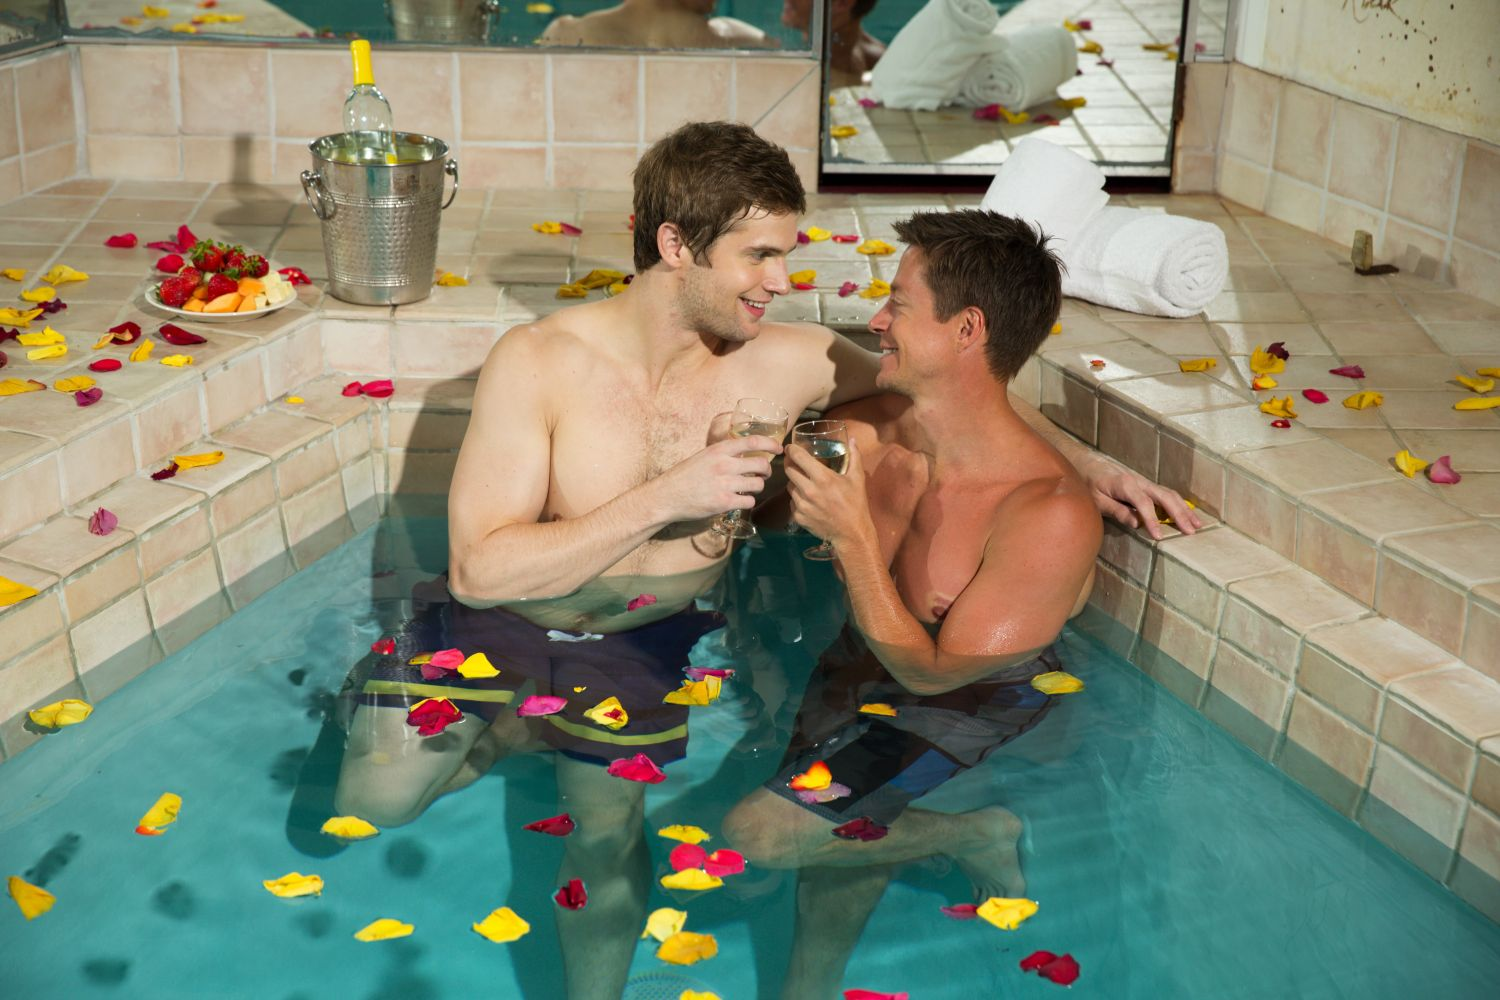 a haven for gay travellers